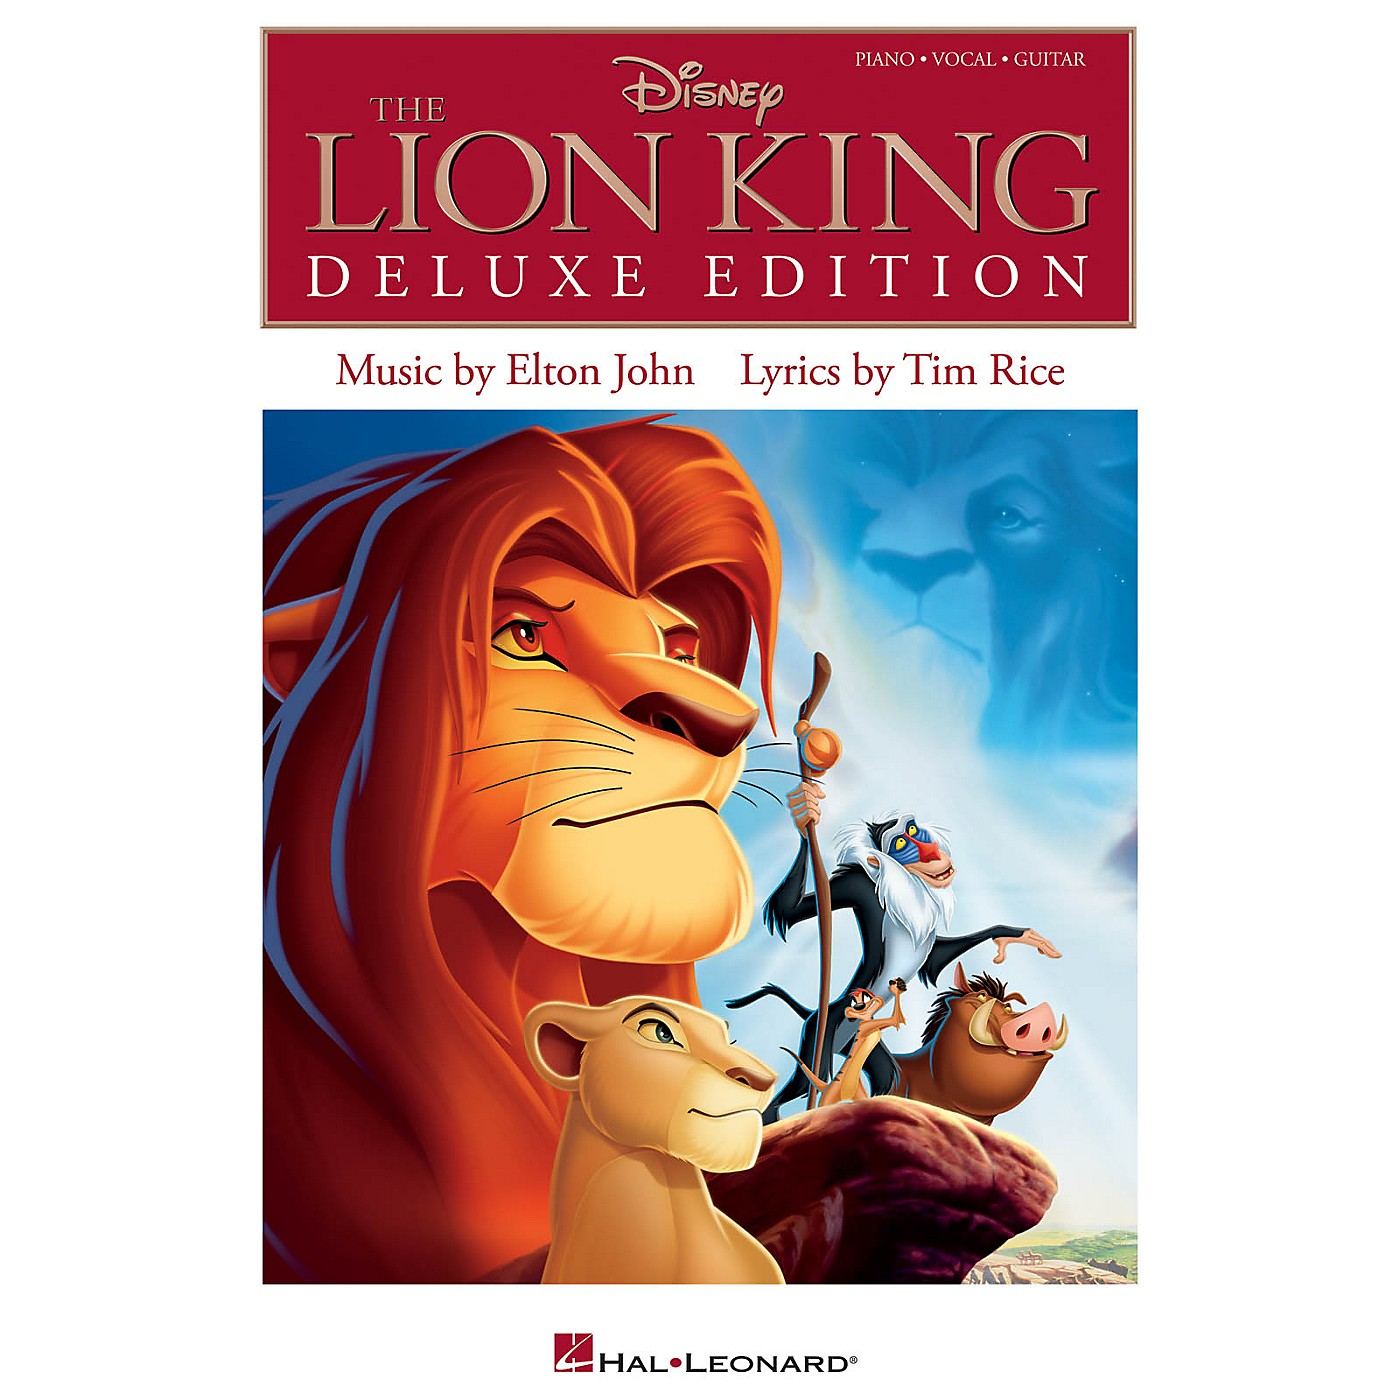 Hal Leonard The Lion King Deluxe Edition for Piano/Vocal/Guitar thumbnail